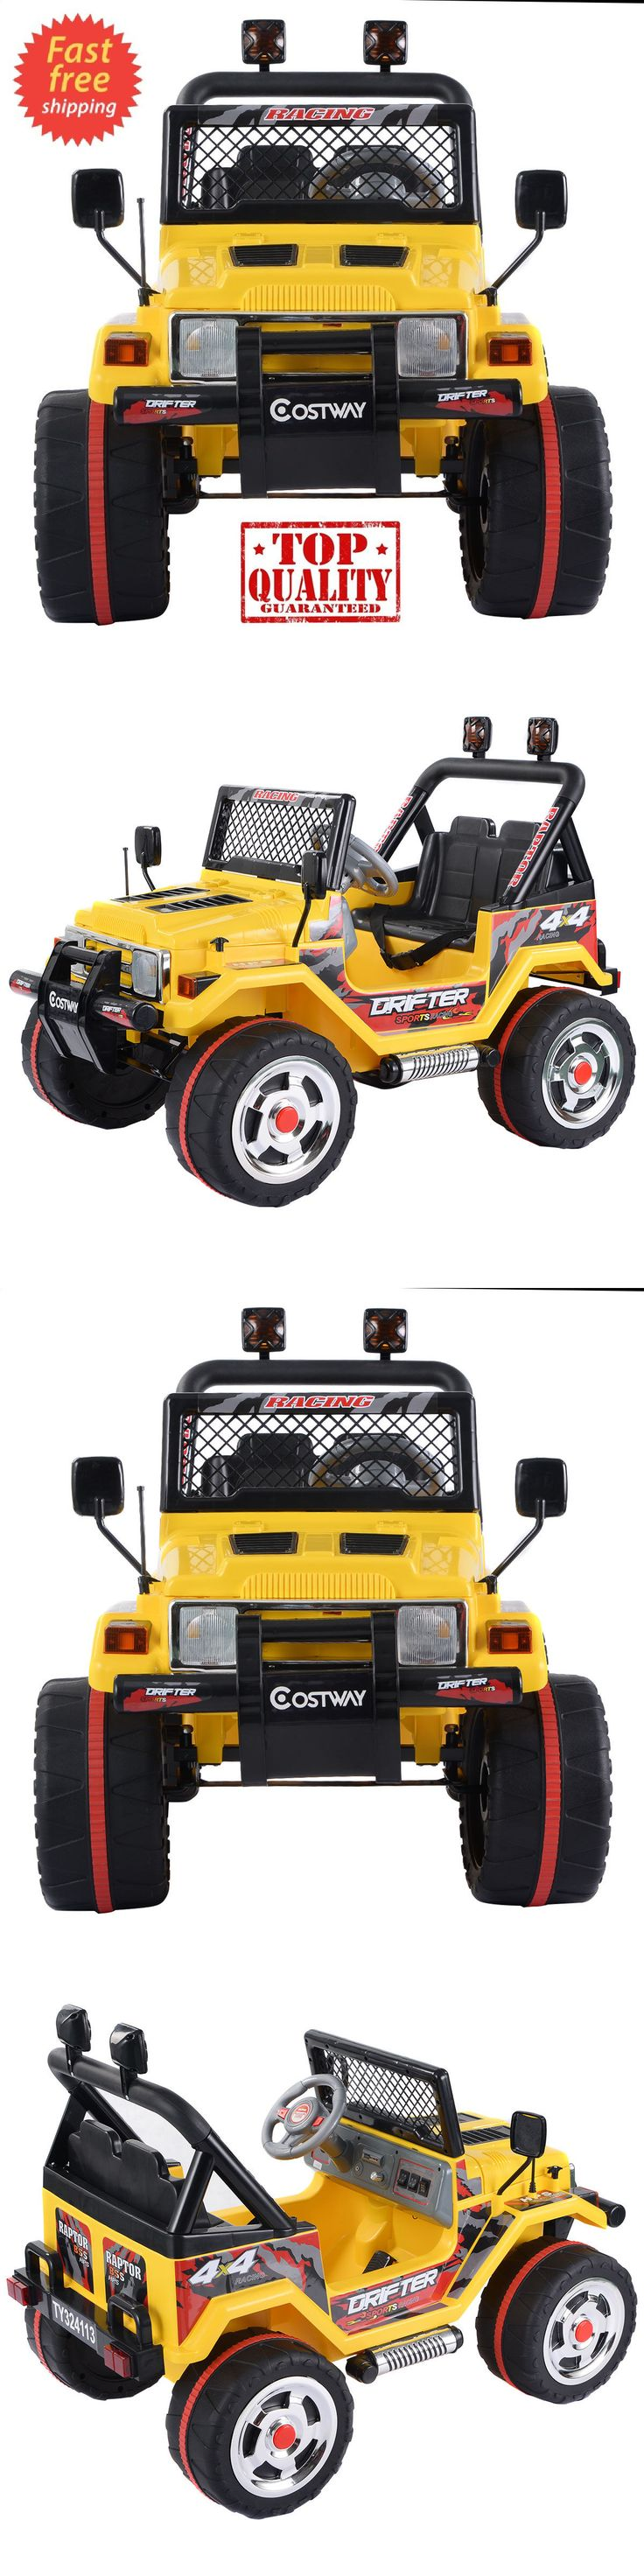 Ride On Toys and Accessories 145944: Ride On Car 12V Kids Power Wheels Jeep Truck Remote Control Rc Lights Music Mp3 -> BUY IT NOW ONLY: $265.01 on eBay!